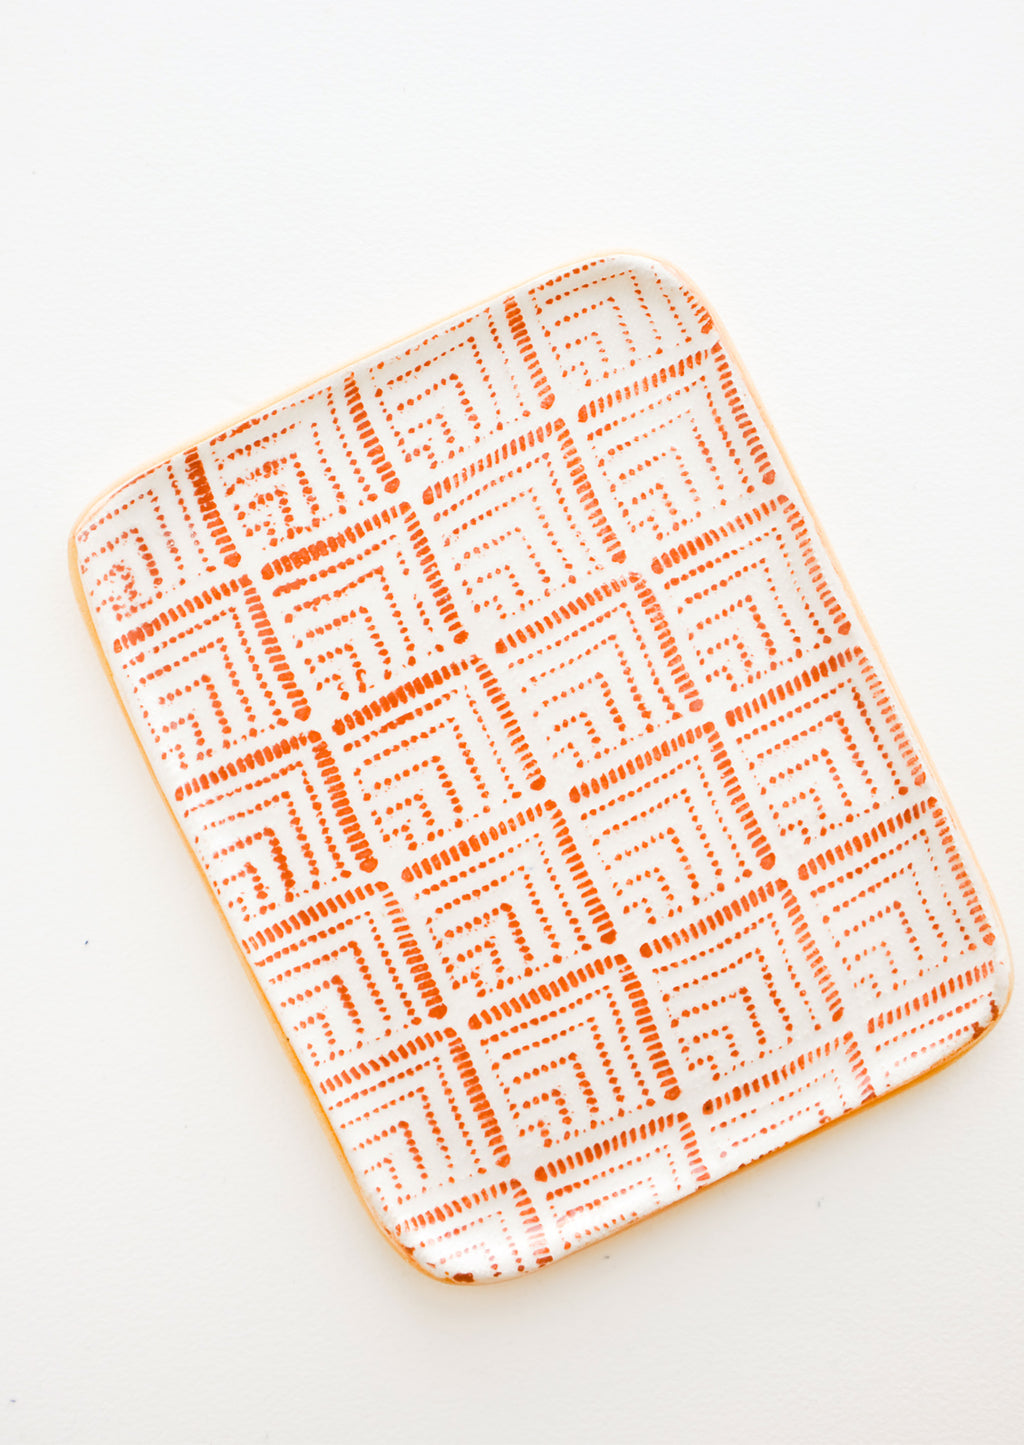 Deco / Rust: Pressed Pattern Ceramic Tea Tray in Deco / Rust - LEIF